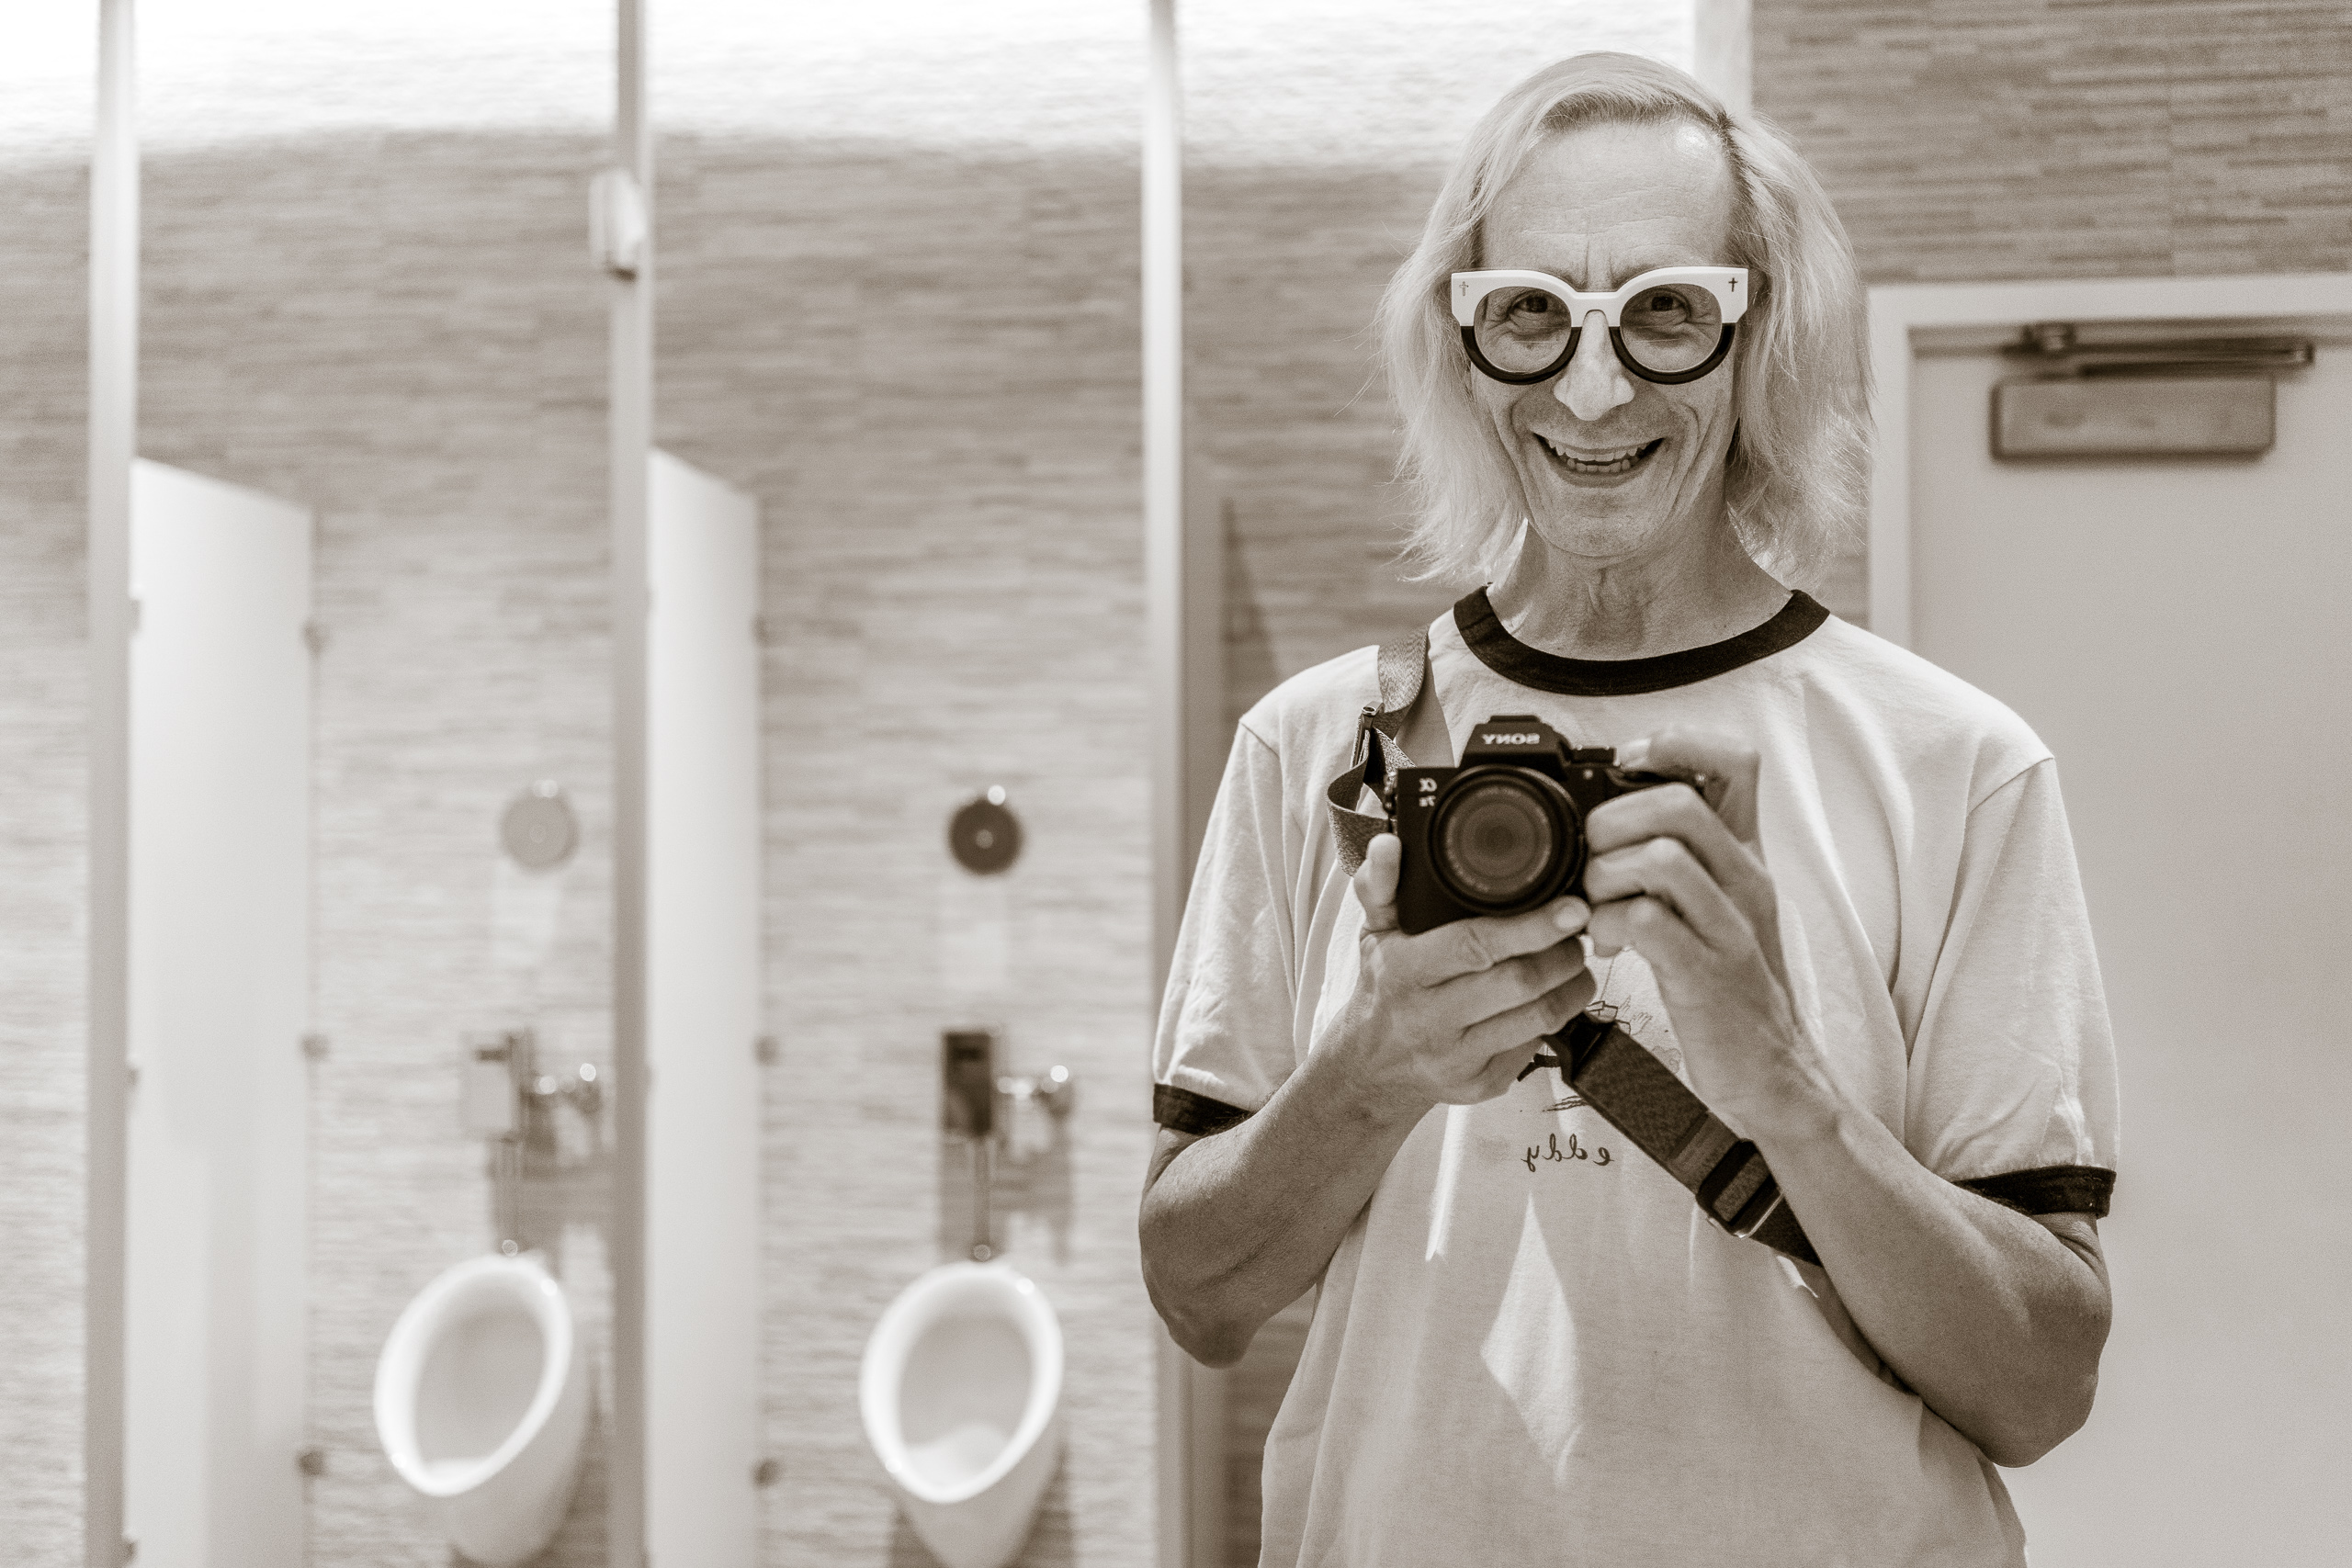 Glenn Zucman taking a selfie in the men's room mirror in the 3rd floor restrooms at the Marciano Art Foundation on Wilshire Blvd